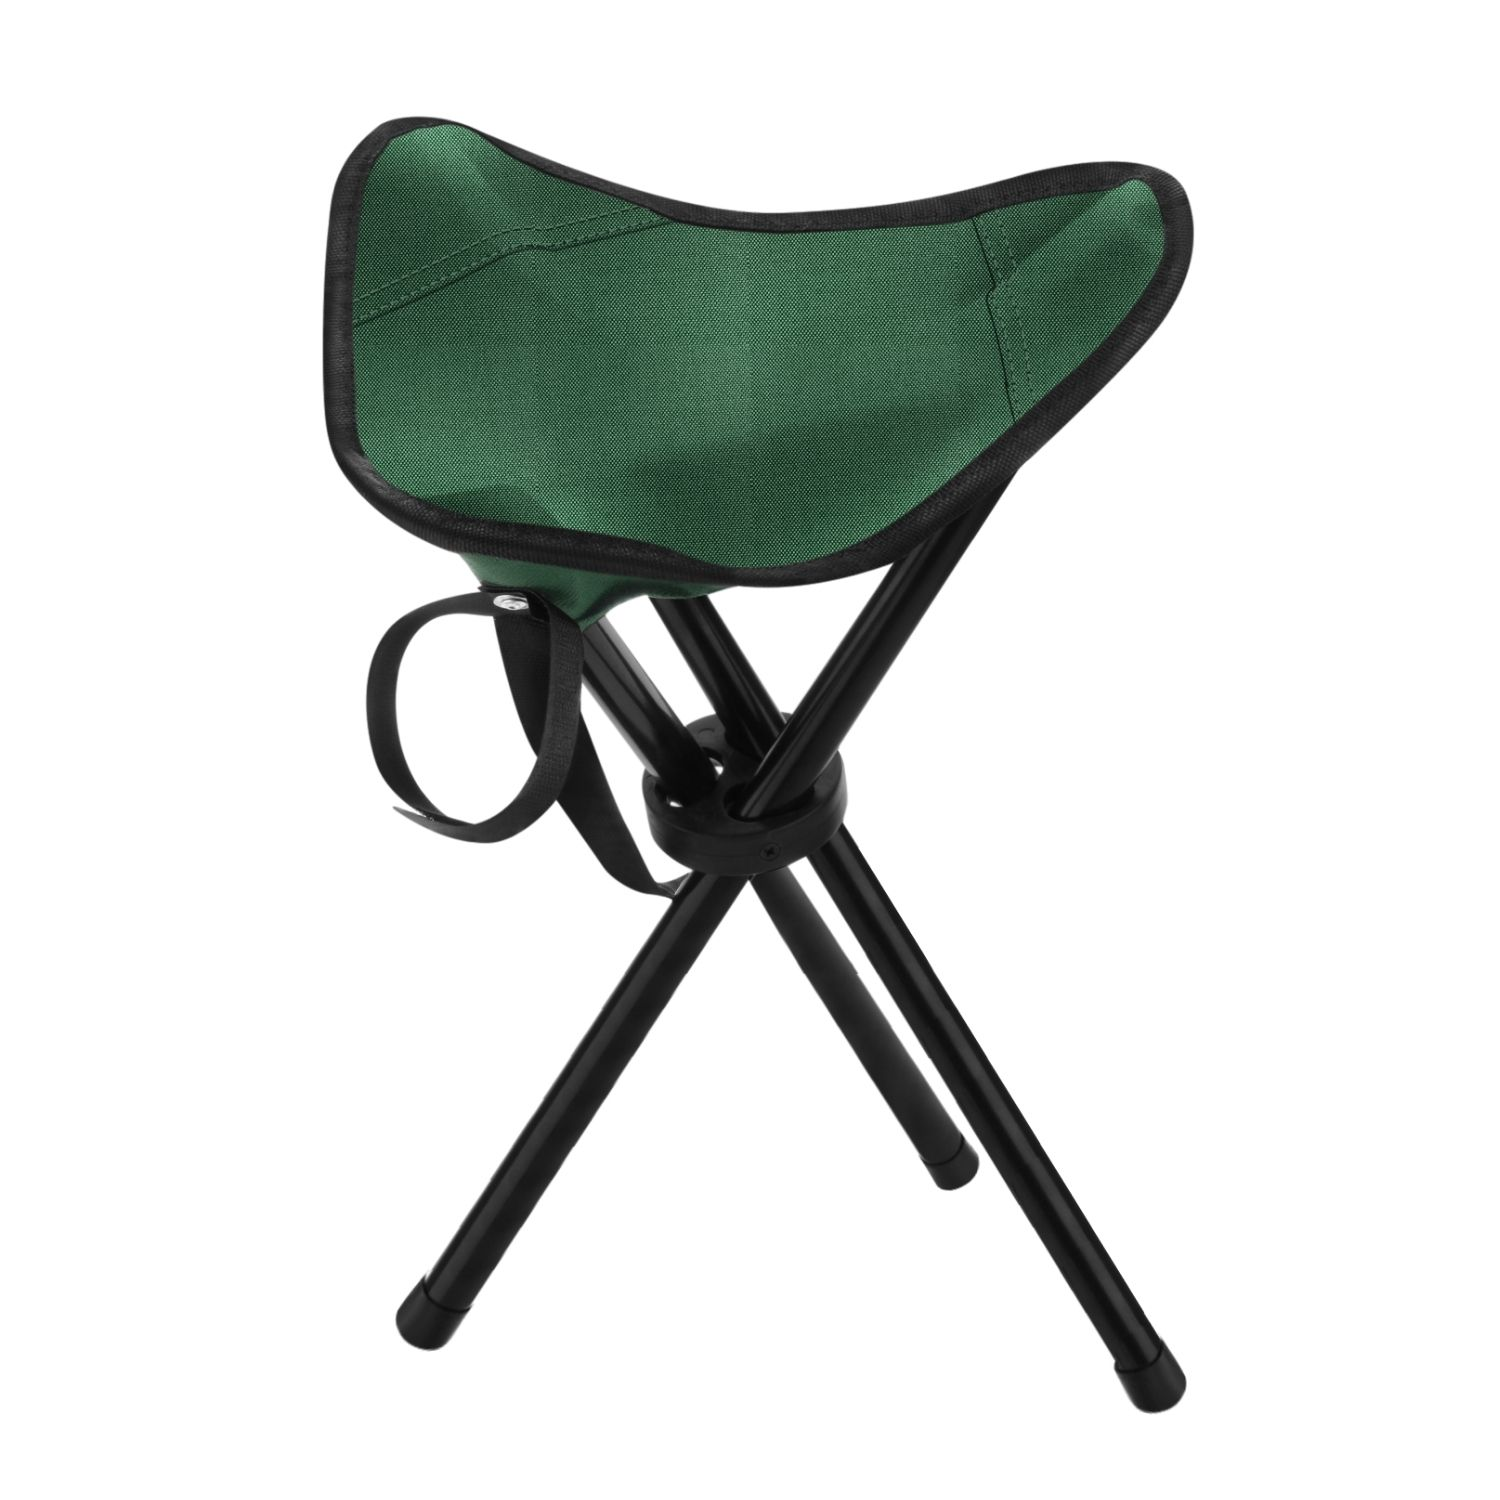 Outdoor Hiking Fishing Lawn Portable Pocket Folding Chair With 3 Leg Stool Green